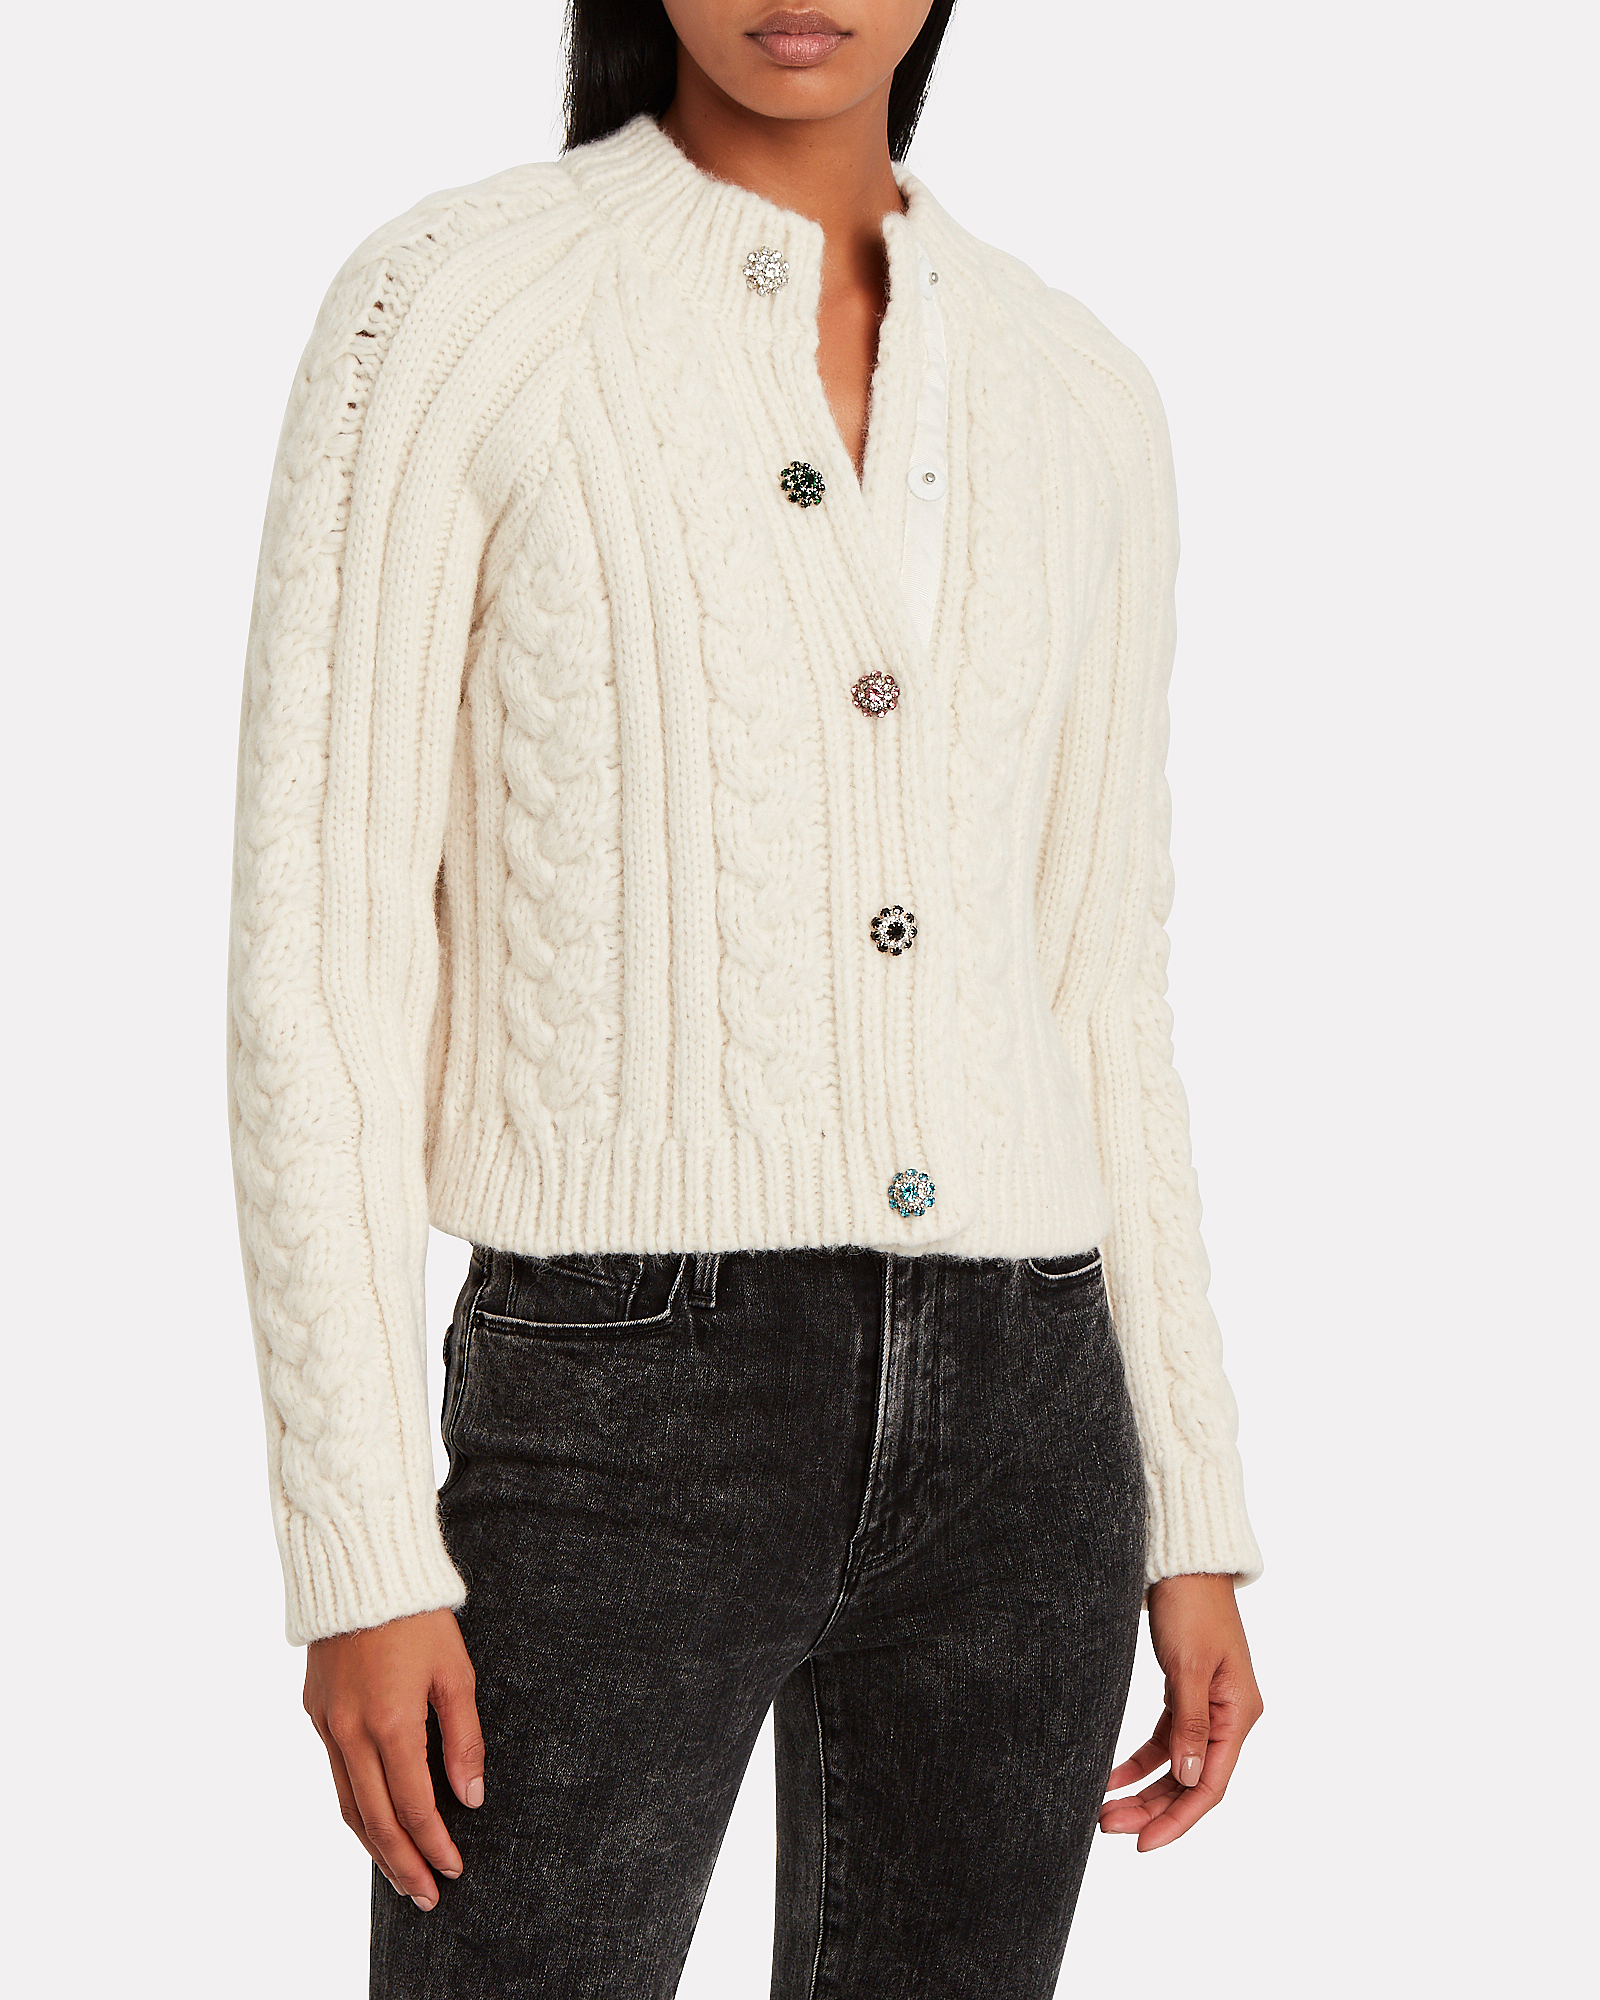 Great Plains Cable knit Ivory Wool Blend Cardigan Size L// UK 14 NEW